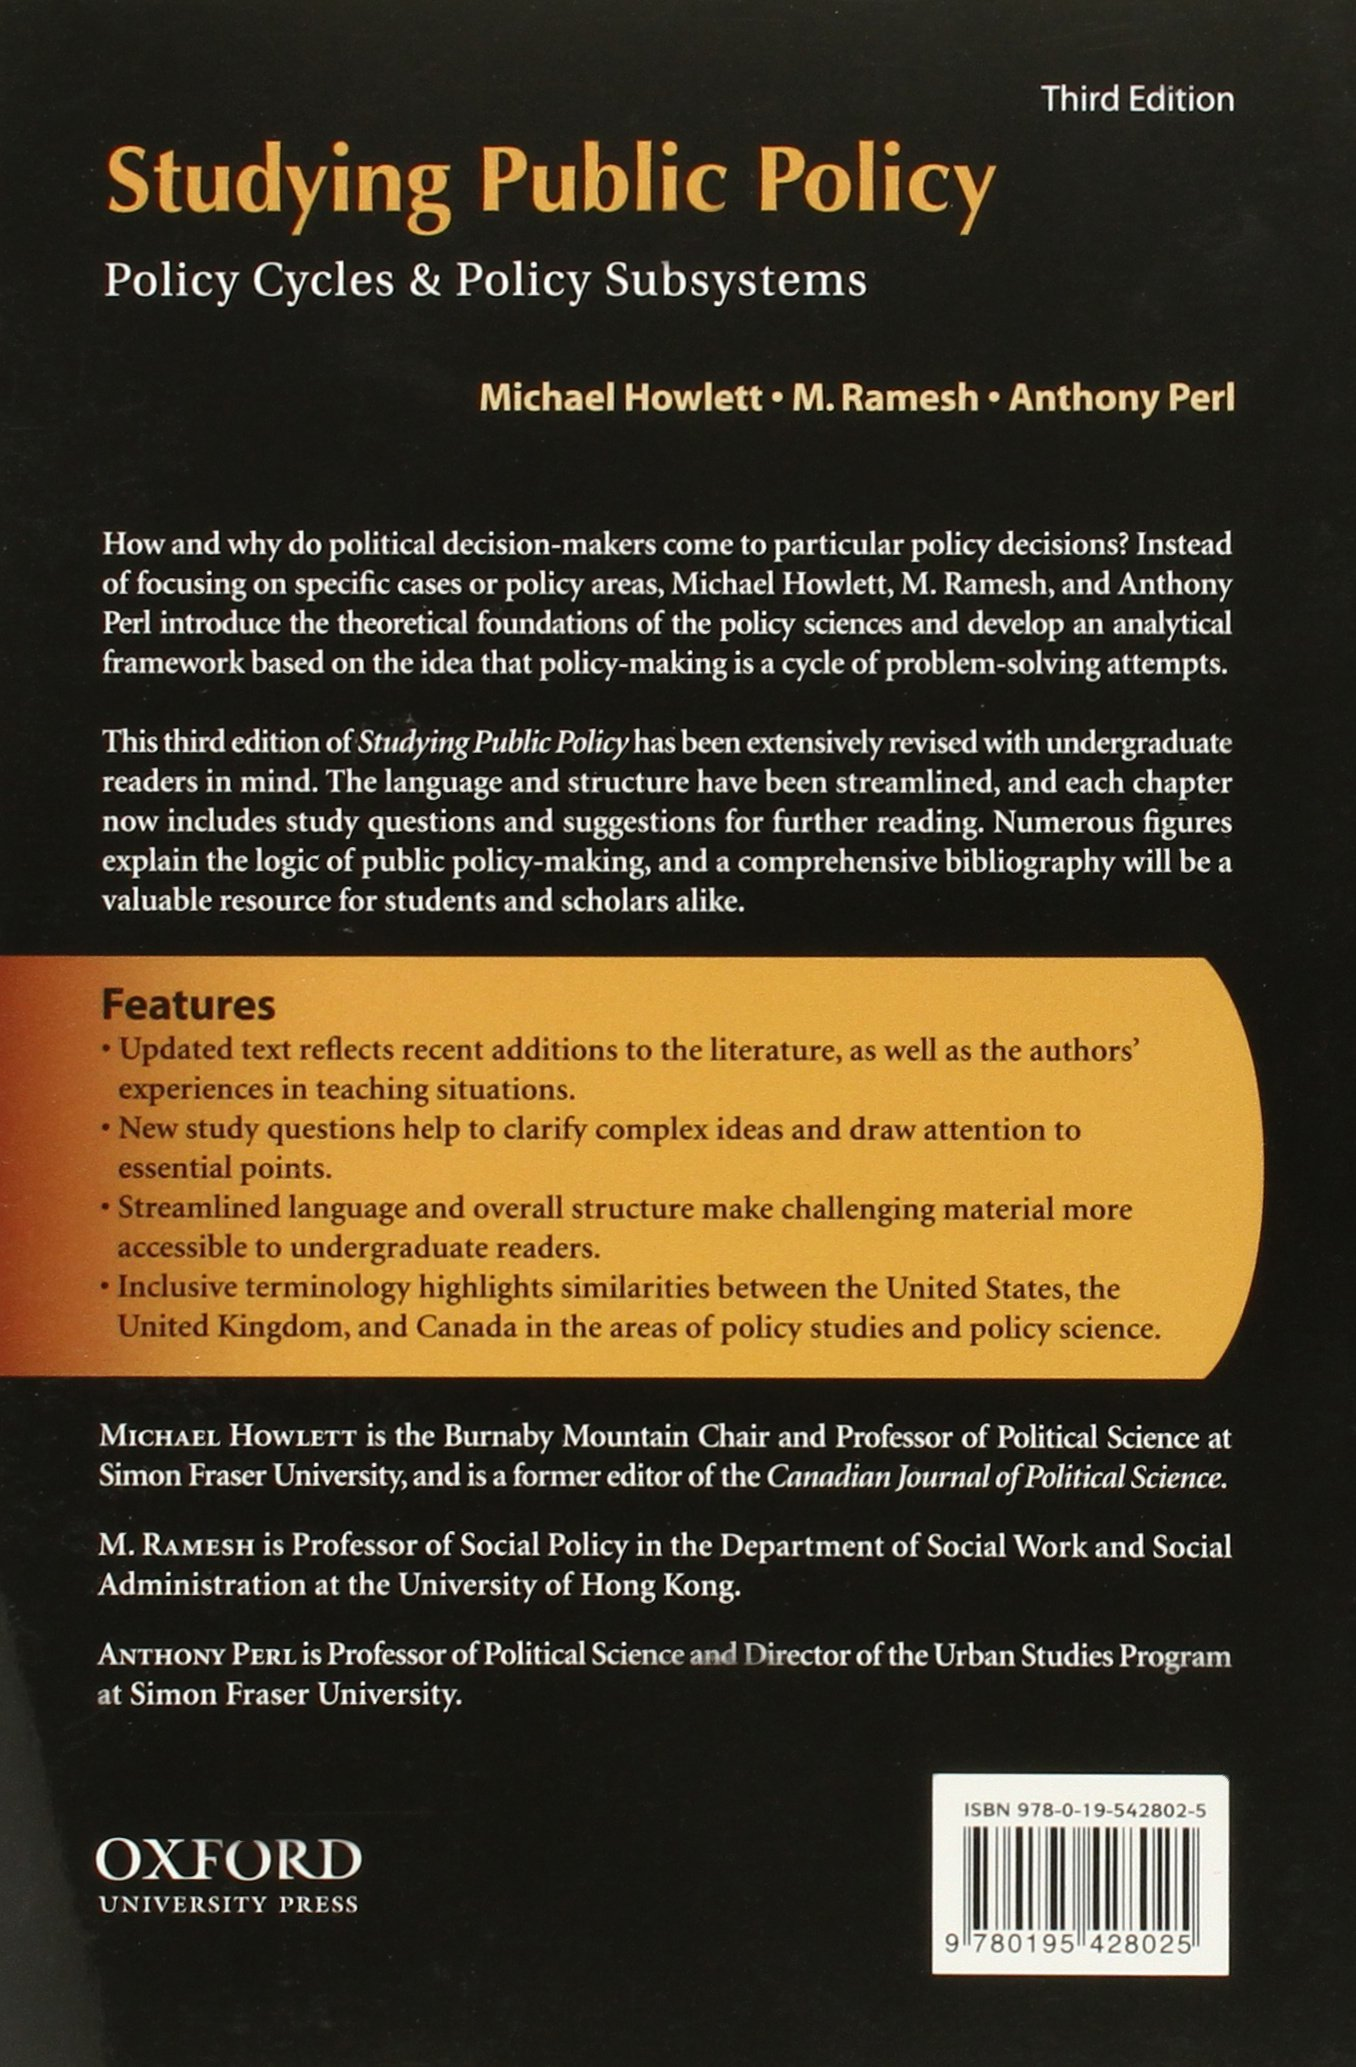 Studying Public Policy: Policy Cycles and Policy Subsystems: Michael  Howlett, M. Ramesh, Anthony Perl: 9780195428025: Government: Amazon Canada